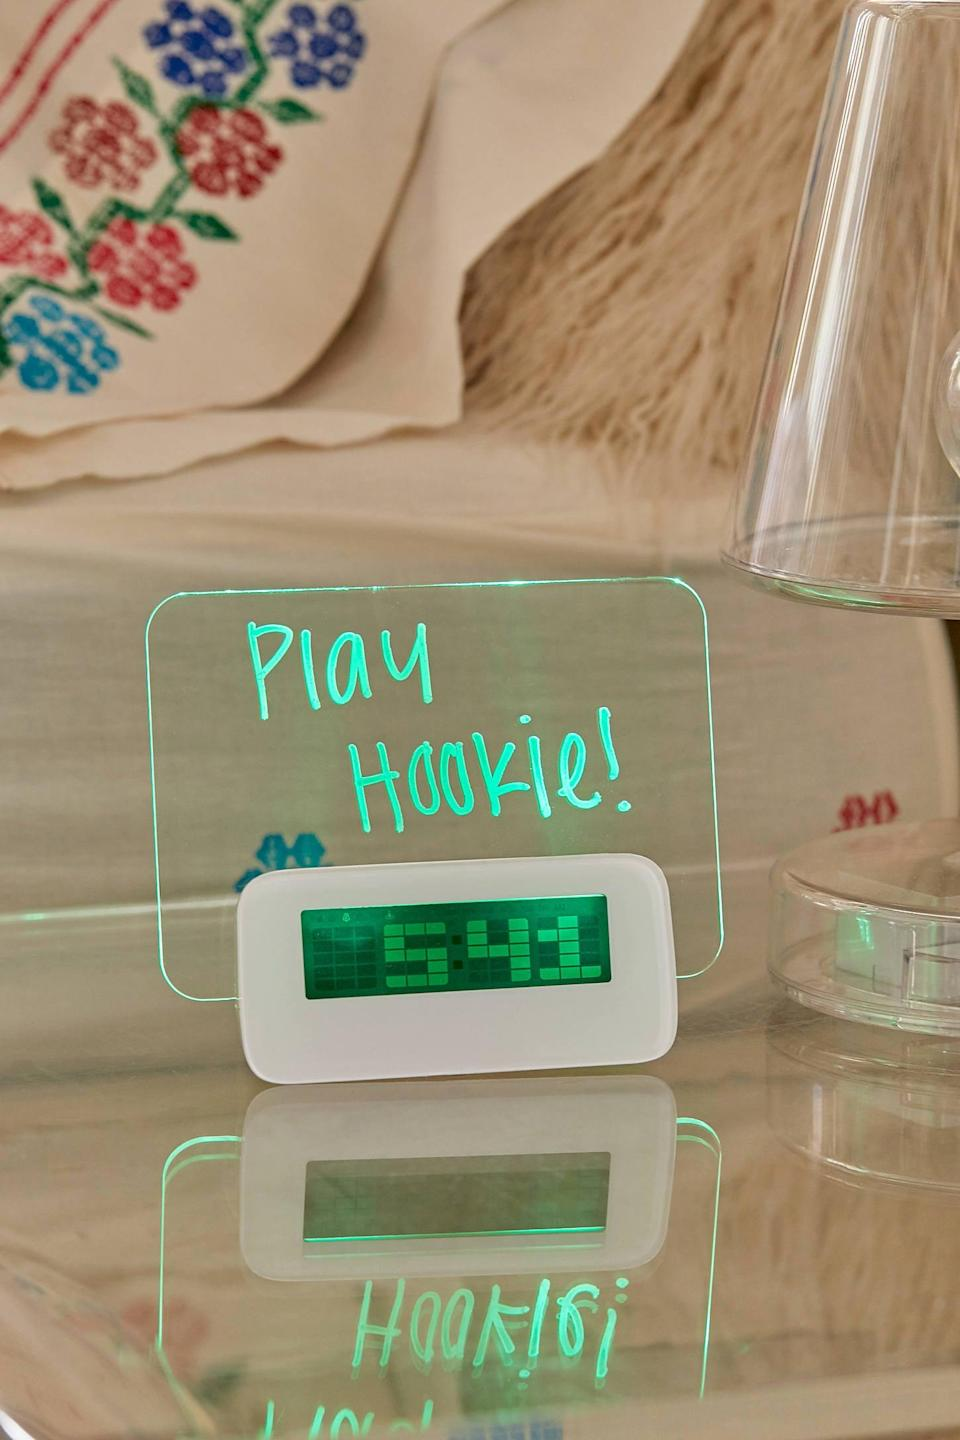 """<p>They can write messages on this <a href=""""https://www.popsugar.com/buy/LED-Scribble-Alarm-Clock-496550?p_name=LED%20Scribble%20Alarm%20Clock&retailer=urbanoutfitters.com&pid=496550&price=20&evar1=geek%3Auk&evar9=26294675&evar98=https%3A%2F%2Fwww.popsugartech.com%2Fphoto-gallery%2F26294675%2Fimage%2F46728677%2FLED-Scribble-Alarm-Clock&list1=shopping%2Cgadgets%2Choliday%2Cgift%20guide%2Choliday%20living%2Ctech%20gifts%2Cgifts%20under%20%24100&prop13=api&pdata=1"""" class=""""link rapid-noclick-resp"""" rel=""""nofollow noopener"""" target=""""_blank"""" data-ylk=""""slk:LED Scribble Alarm Clock"""">LED Scribble Alarm Clock</a> ($20).</p>"""